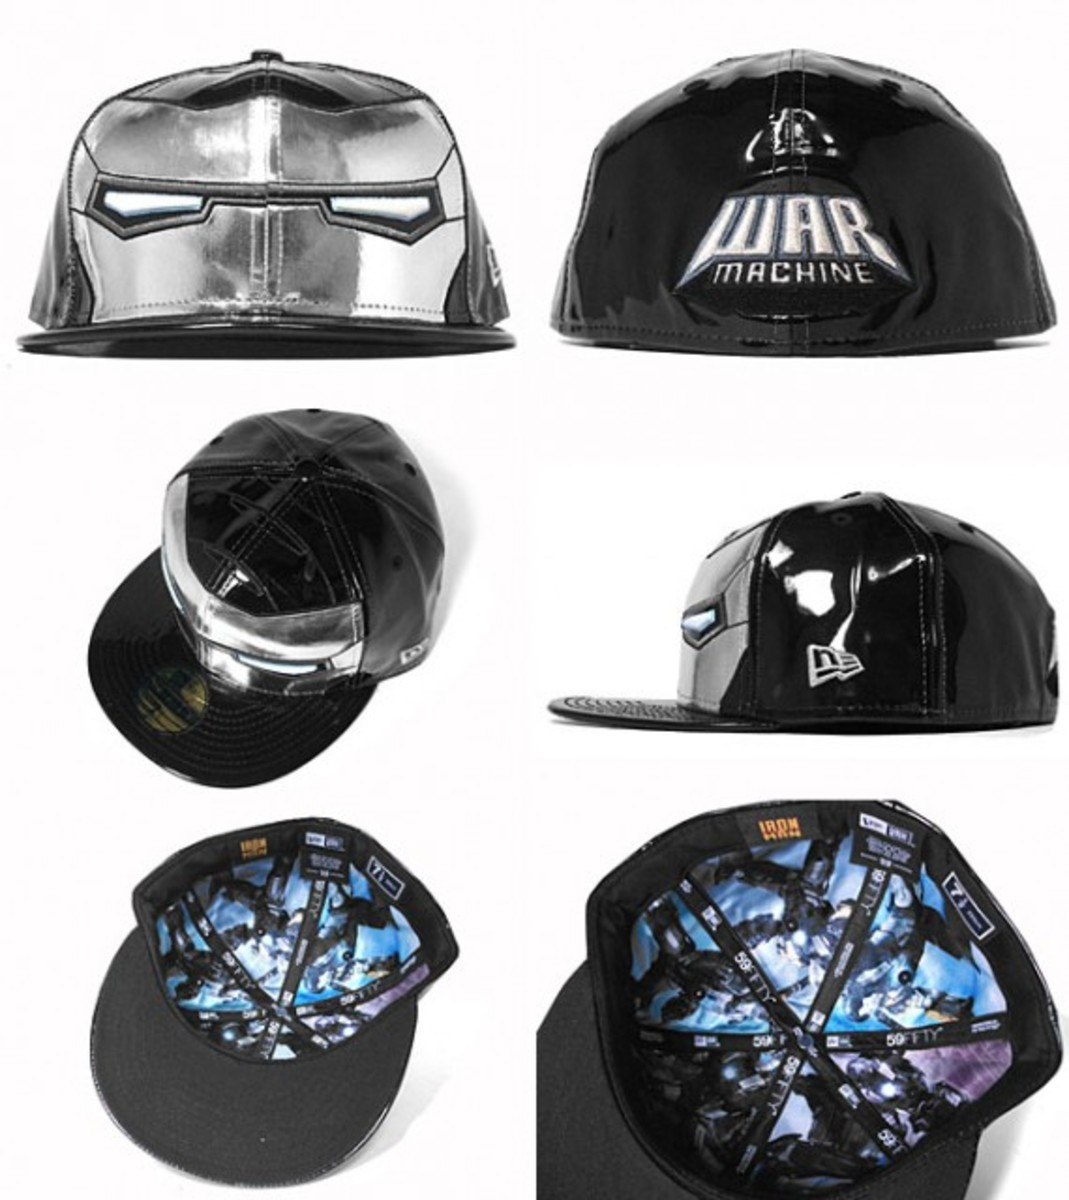 Marvel x New Era - Iron Man 2 59FIFTY Caps - Freshness Mag a1d812ba33d3